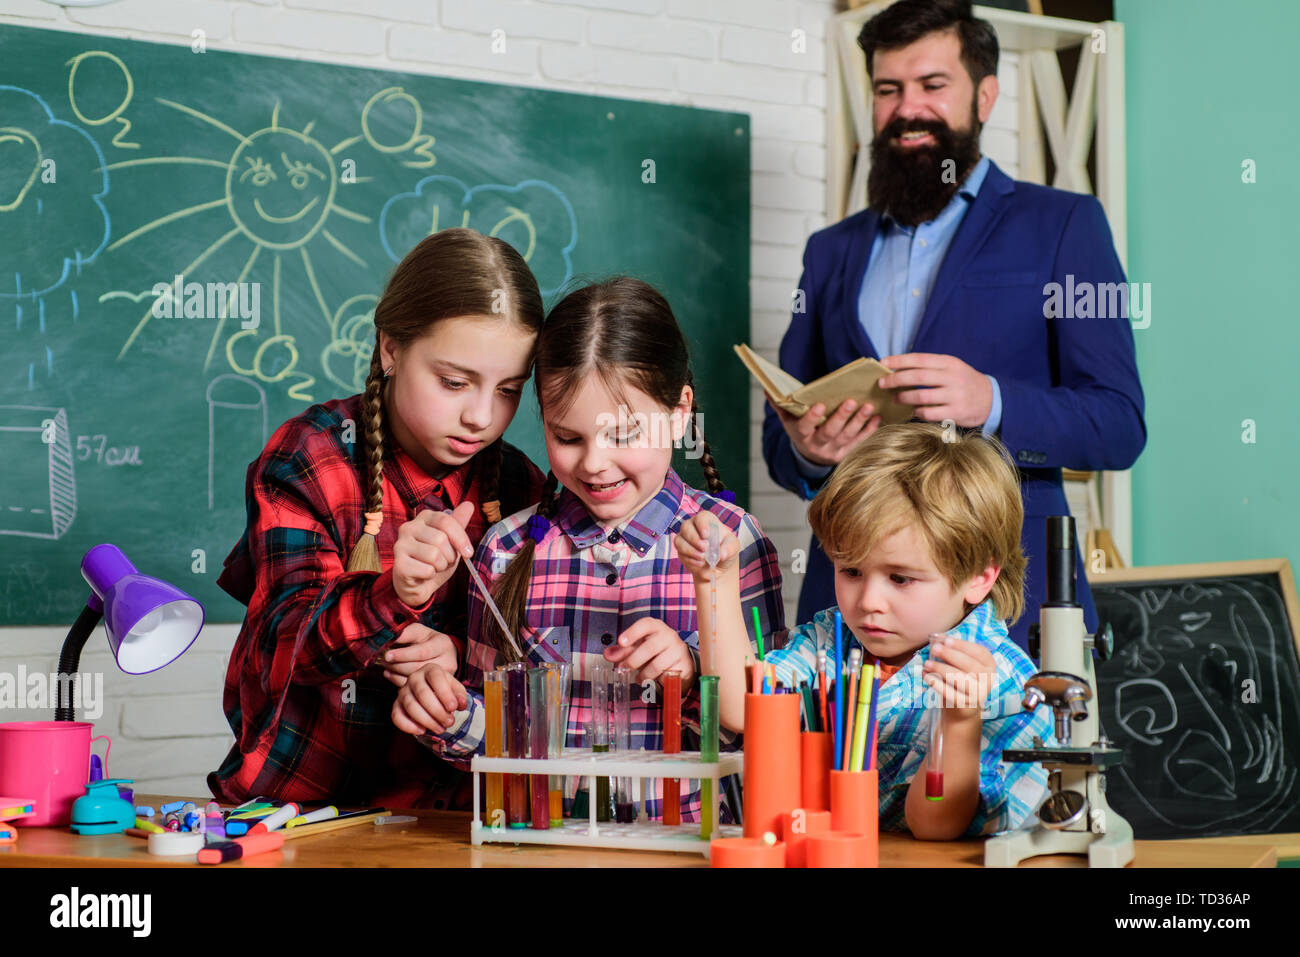 children making science experiments. Education. Science and education. chemistry lab. happy children teacher. back to school. doing experiments with liquids in chemistry lab. Studying hard. - Stock Image